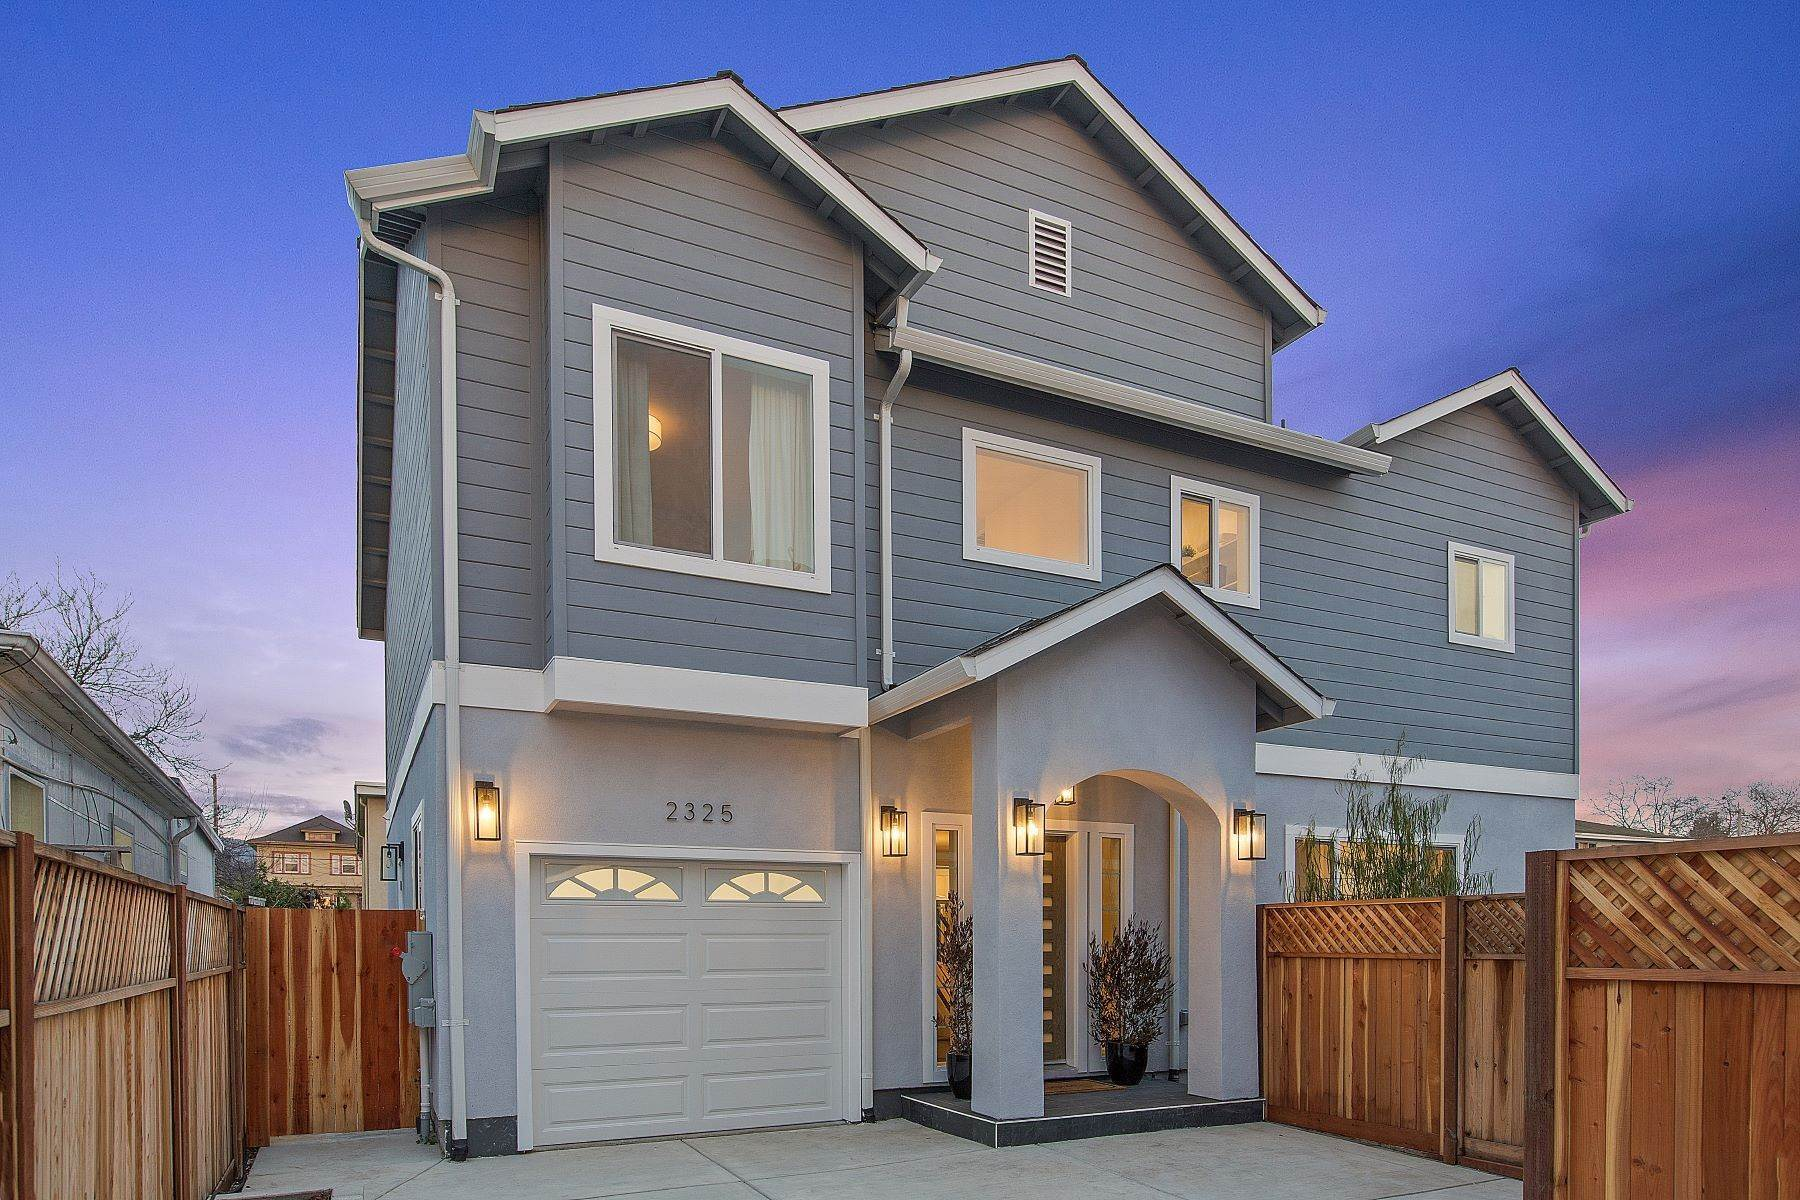 Single Family Homes for Sale at Exceptional Southwest Berkeley New Construction Home 2325 8th Street Berkeley, California 94710 United States